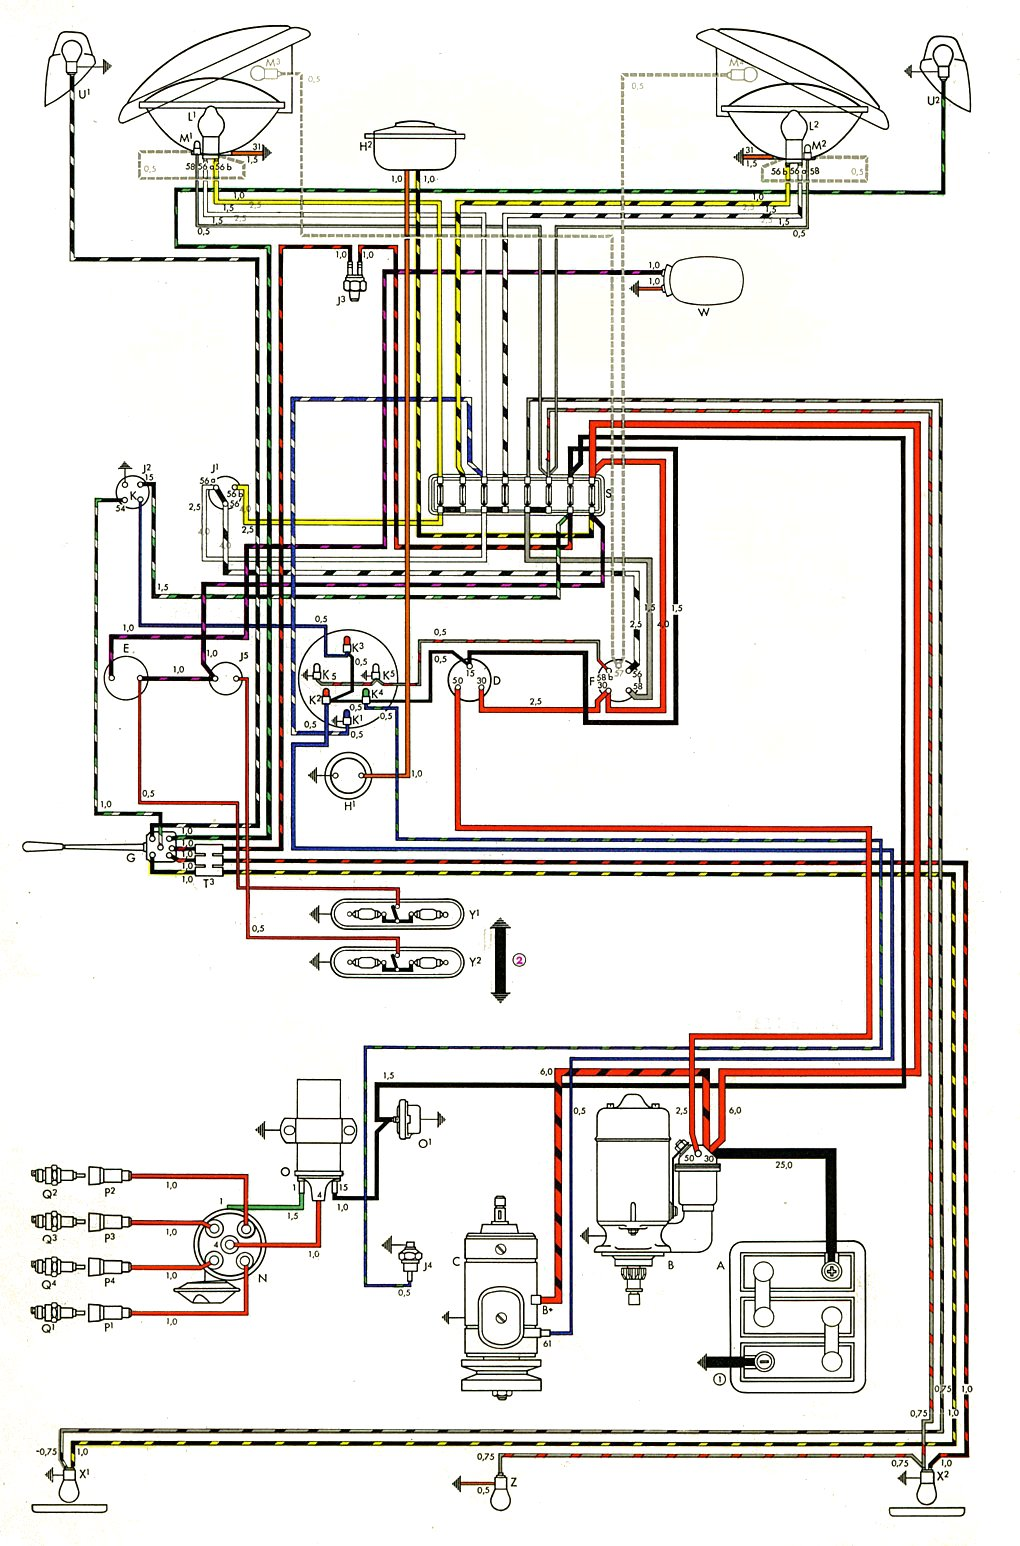 wiring diagram 5s1f 3 way toggle switch guitar wiring diagram #3